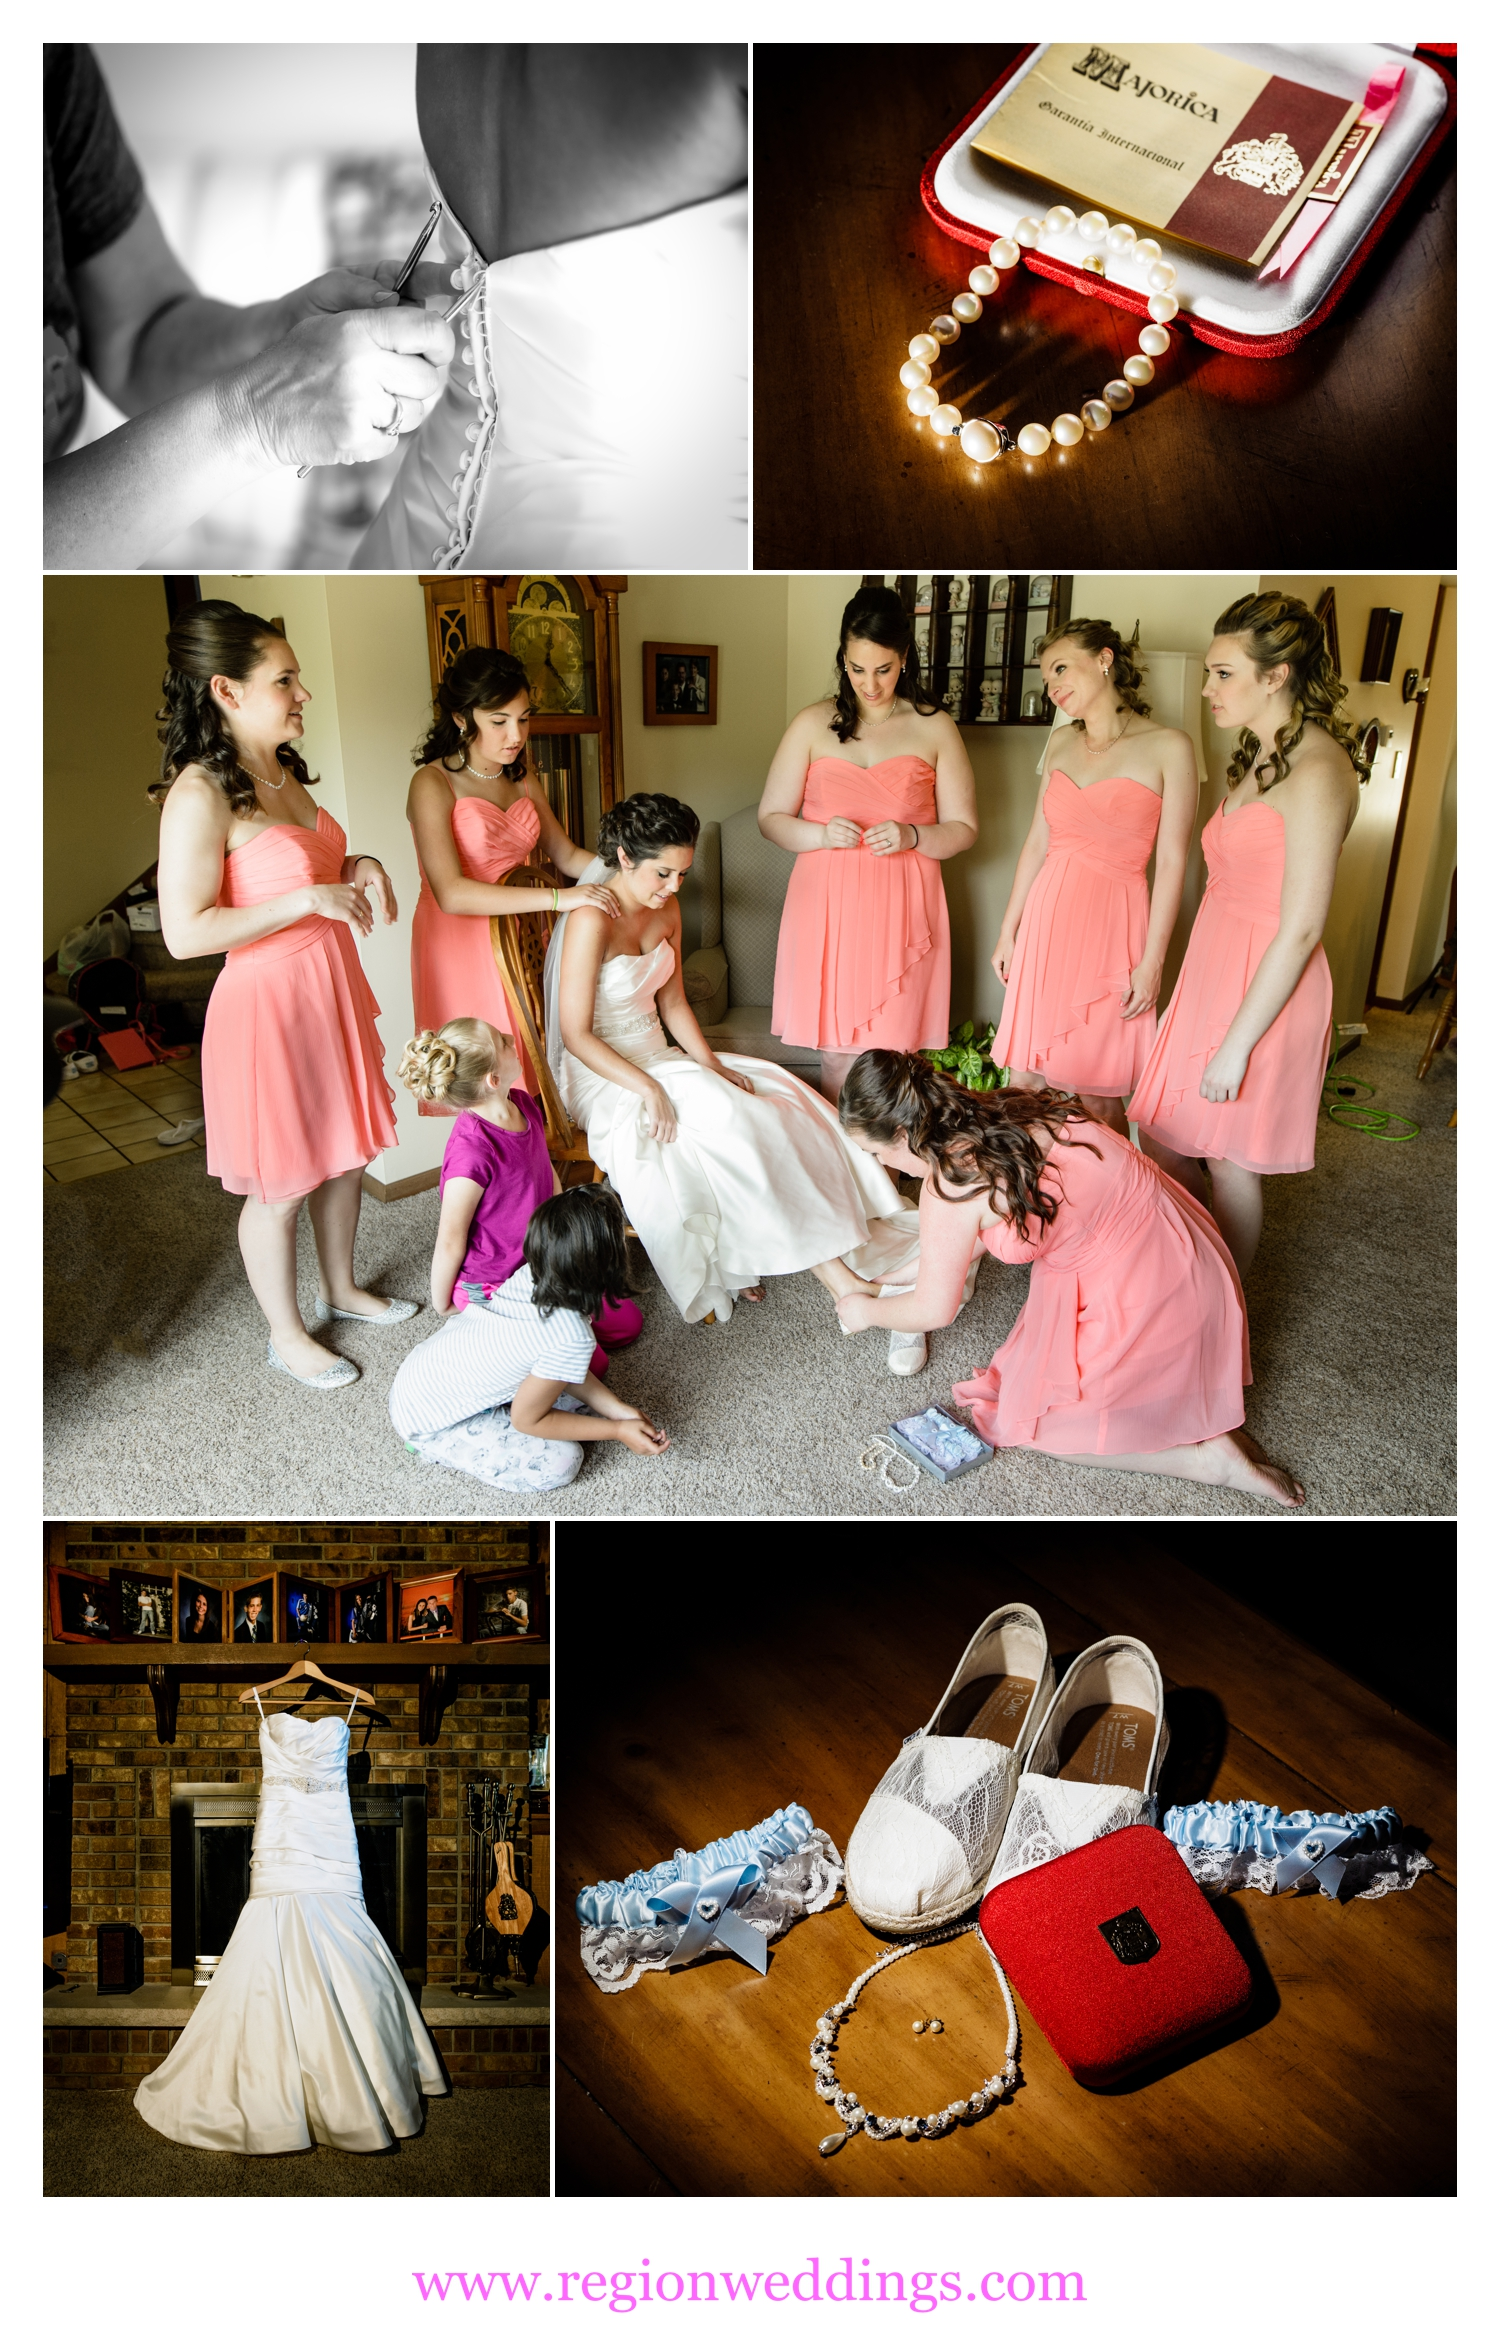 The bride and her bridesmaid's get ready at her parent's house in Schererville, Indiana.